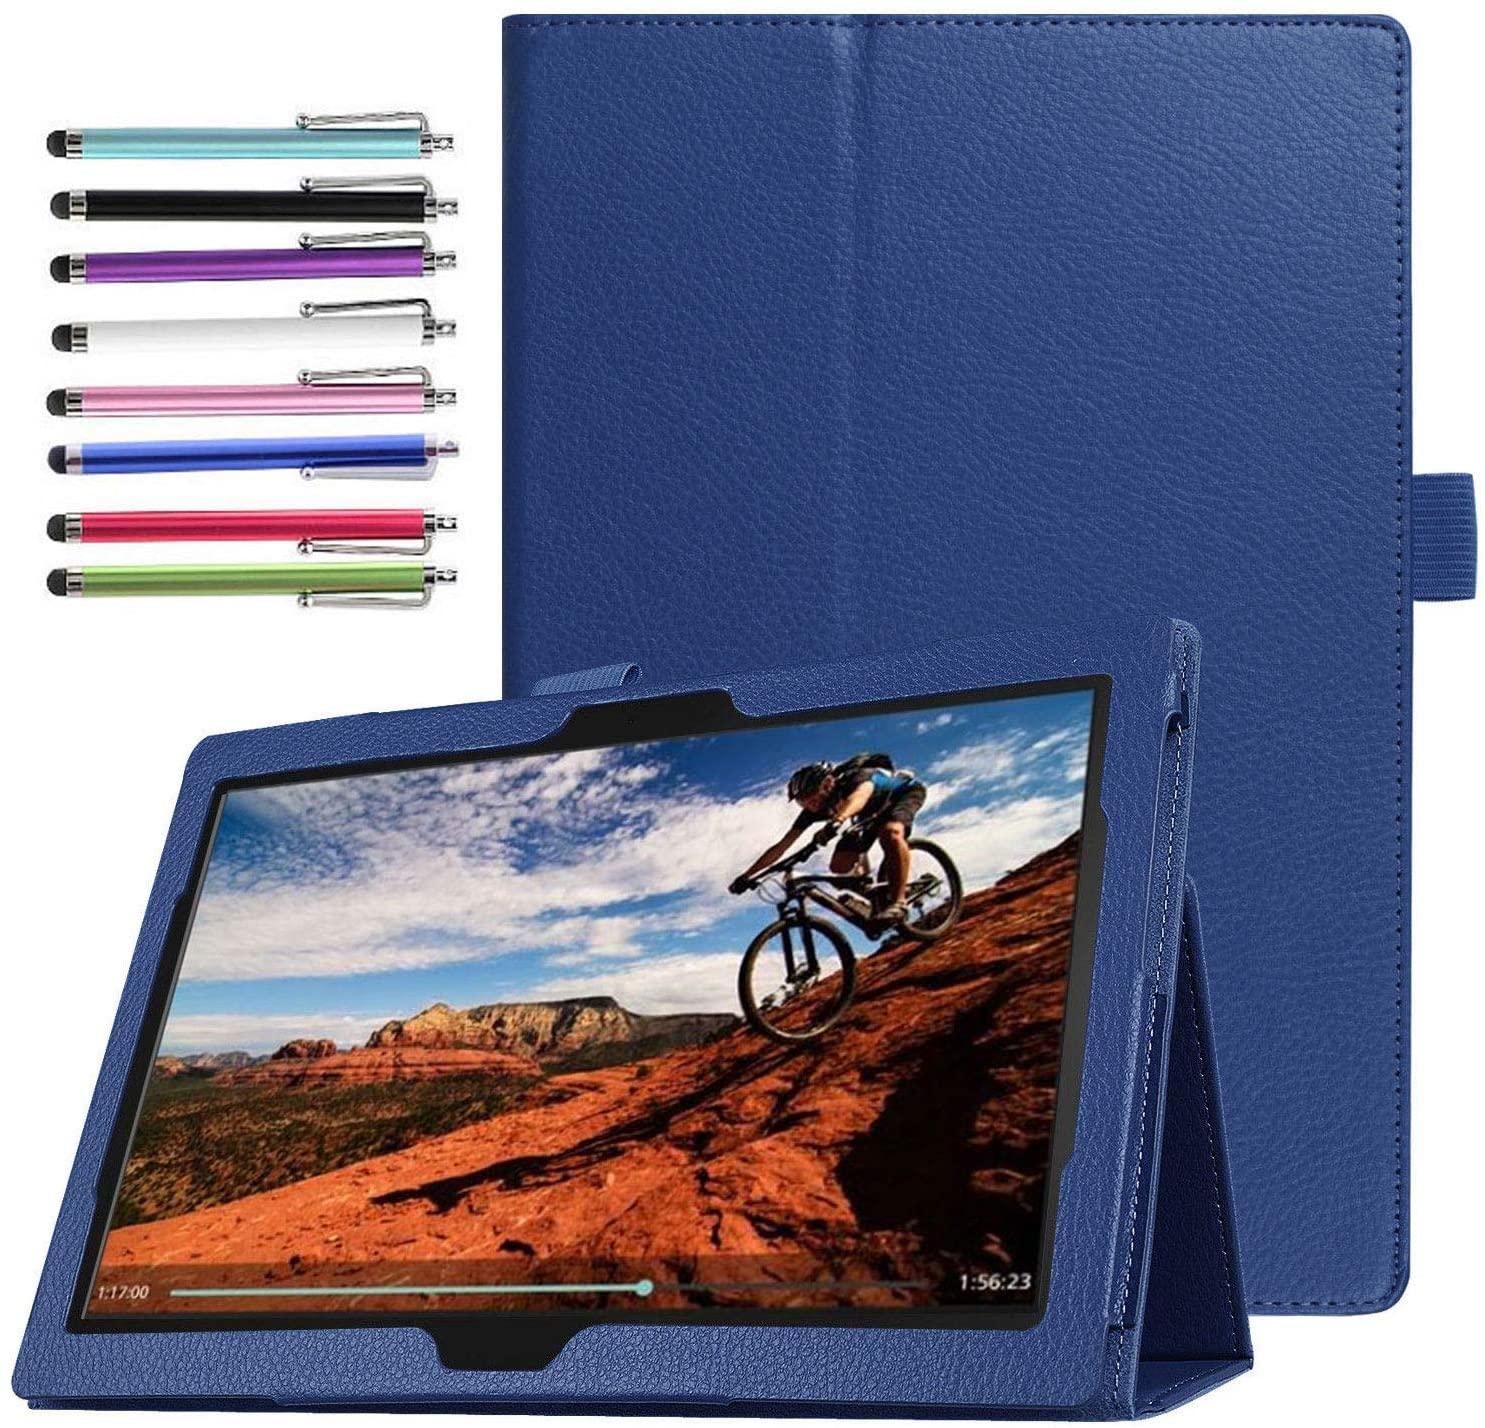 Epicgadget Case for Lenovo Tab M10 TB-X605F Slim Lightweight Folio PU Leather Folding Stand Cover Case for Lenovo Tablet 2018 Tab M10 10.1 Inch Display (Navy Blue)